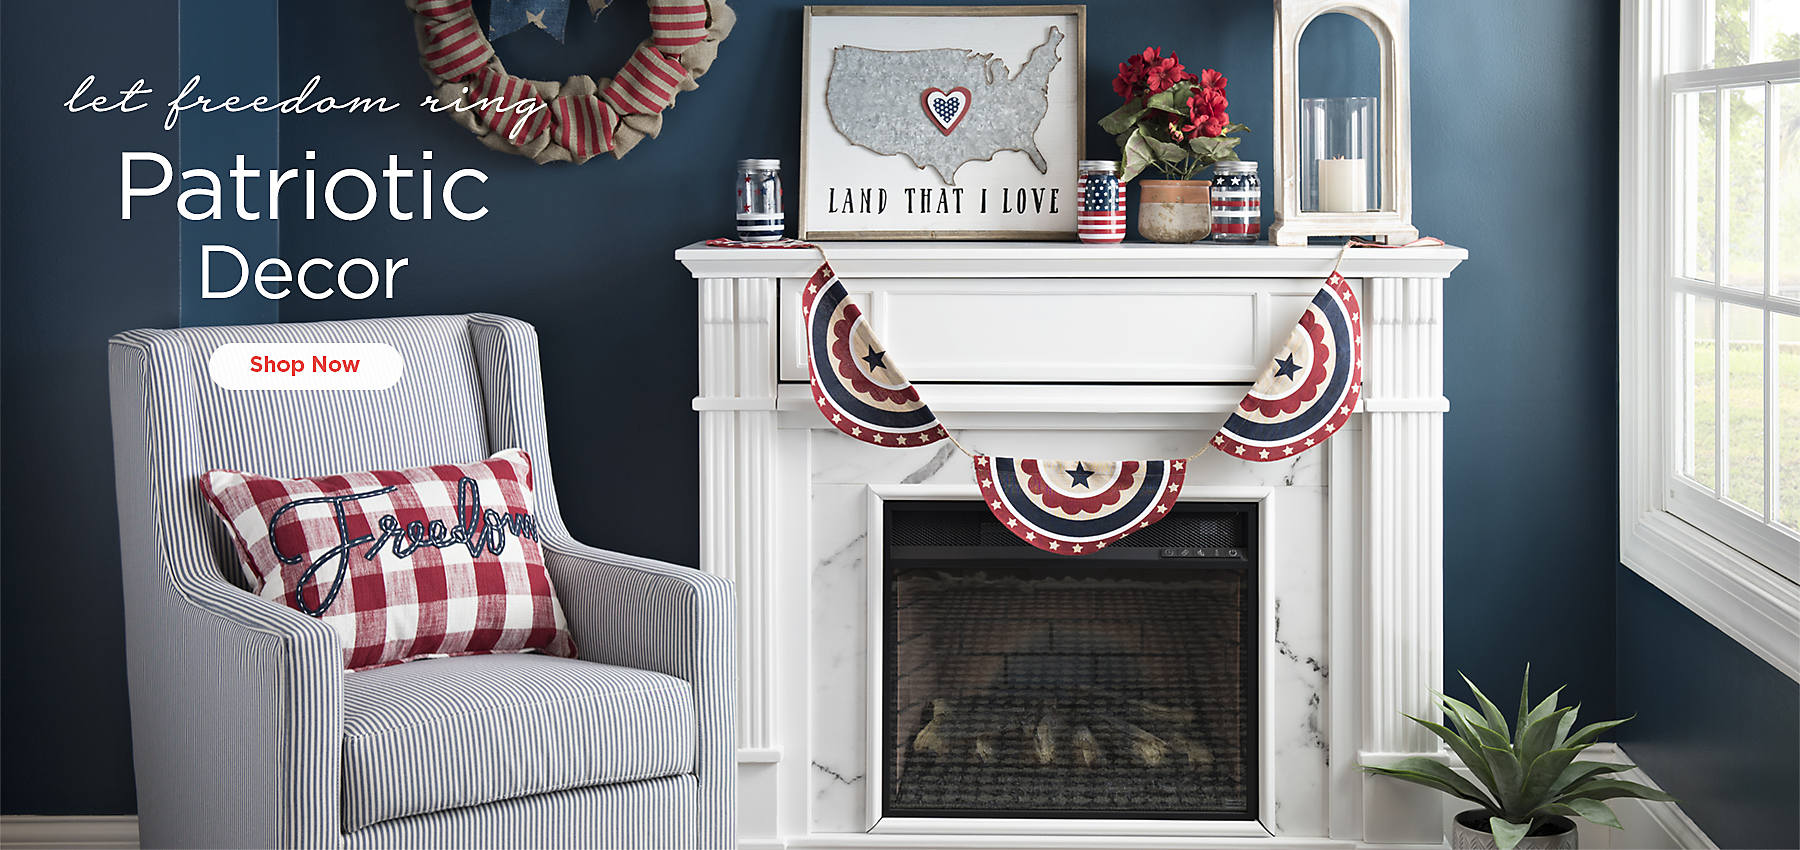 Let Freedom Ring Patriotic Decor   Shop Now